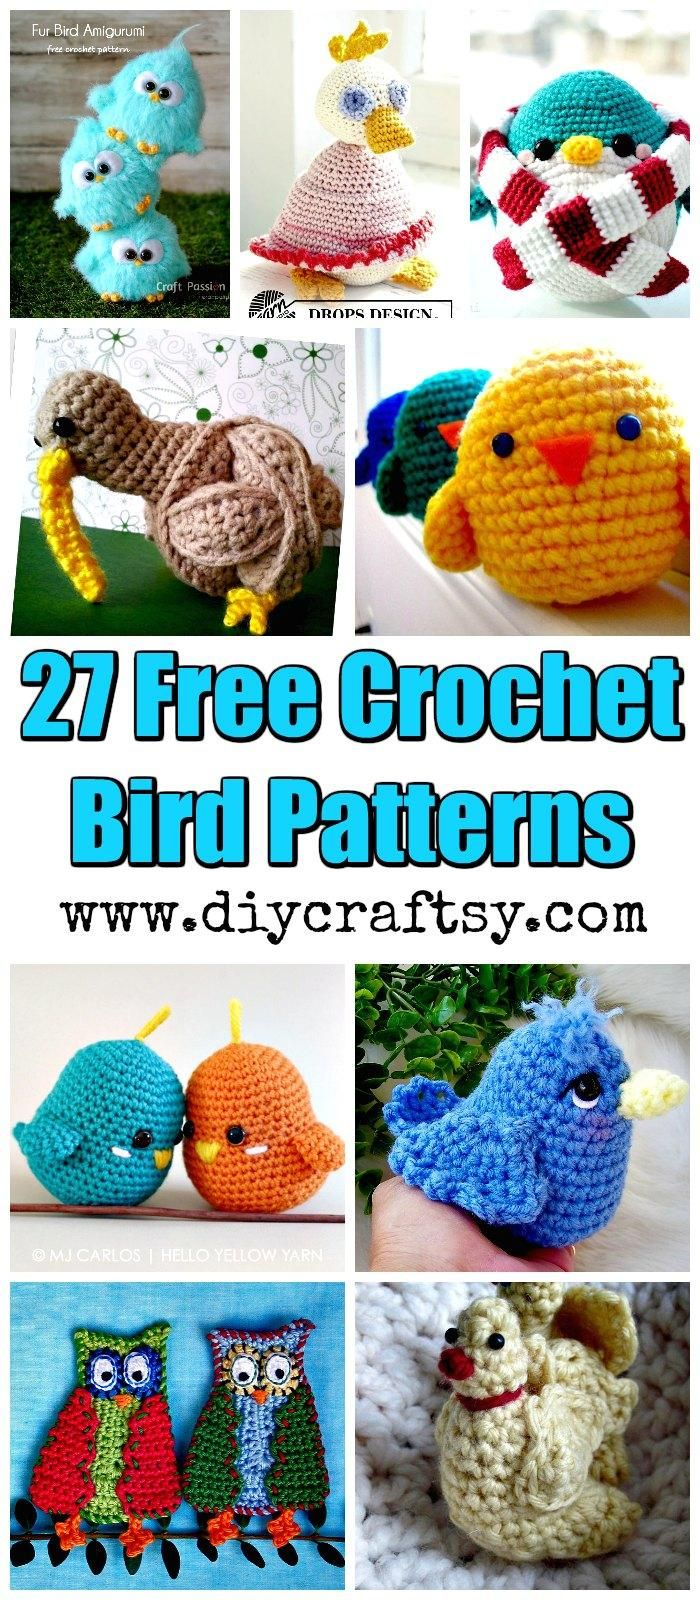 27 Free Crochet Bird Patterns You'll Love - DIY & Crafts